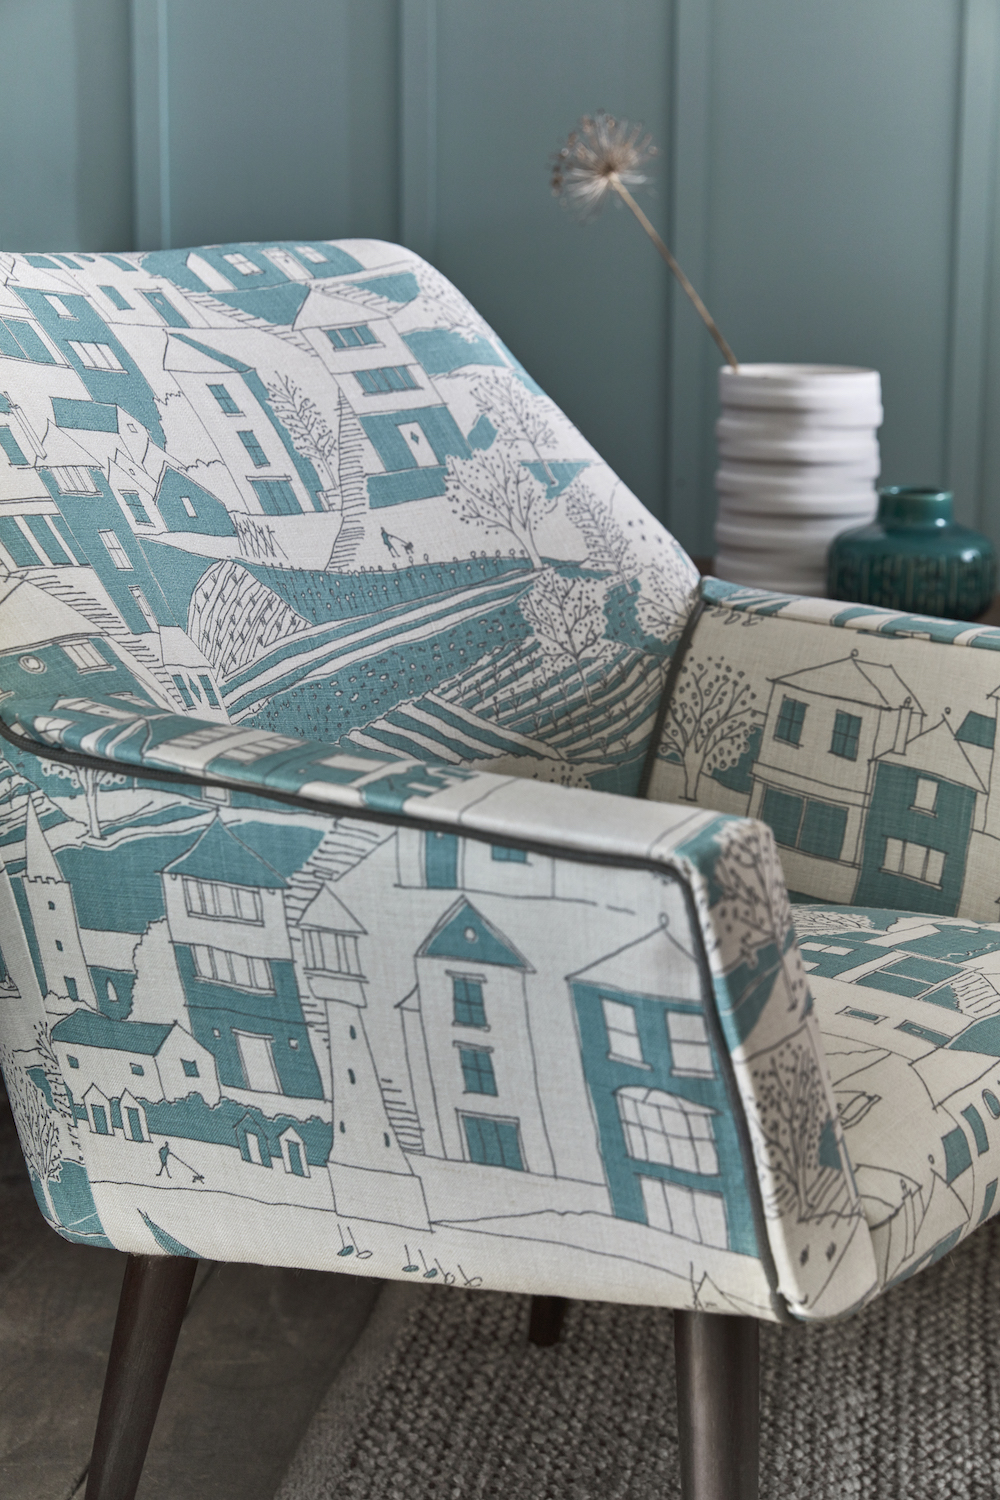 RETRO CHAIR: By the Sea Teal, Charcoal SEA-20-38 £52/mtr piping Plain Linen Charcoal PLAIN-38 £48/mtr.RUG: Handmade Looped by Scumble Goosie £49 each.PAINT: Brighton 203 by Little Greene Paint Company £42 per 2.5 ltr.